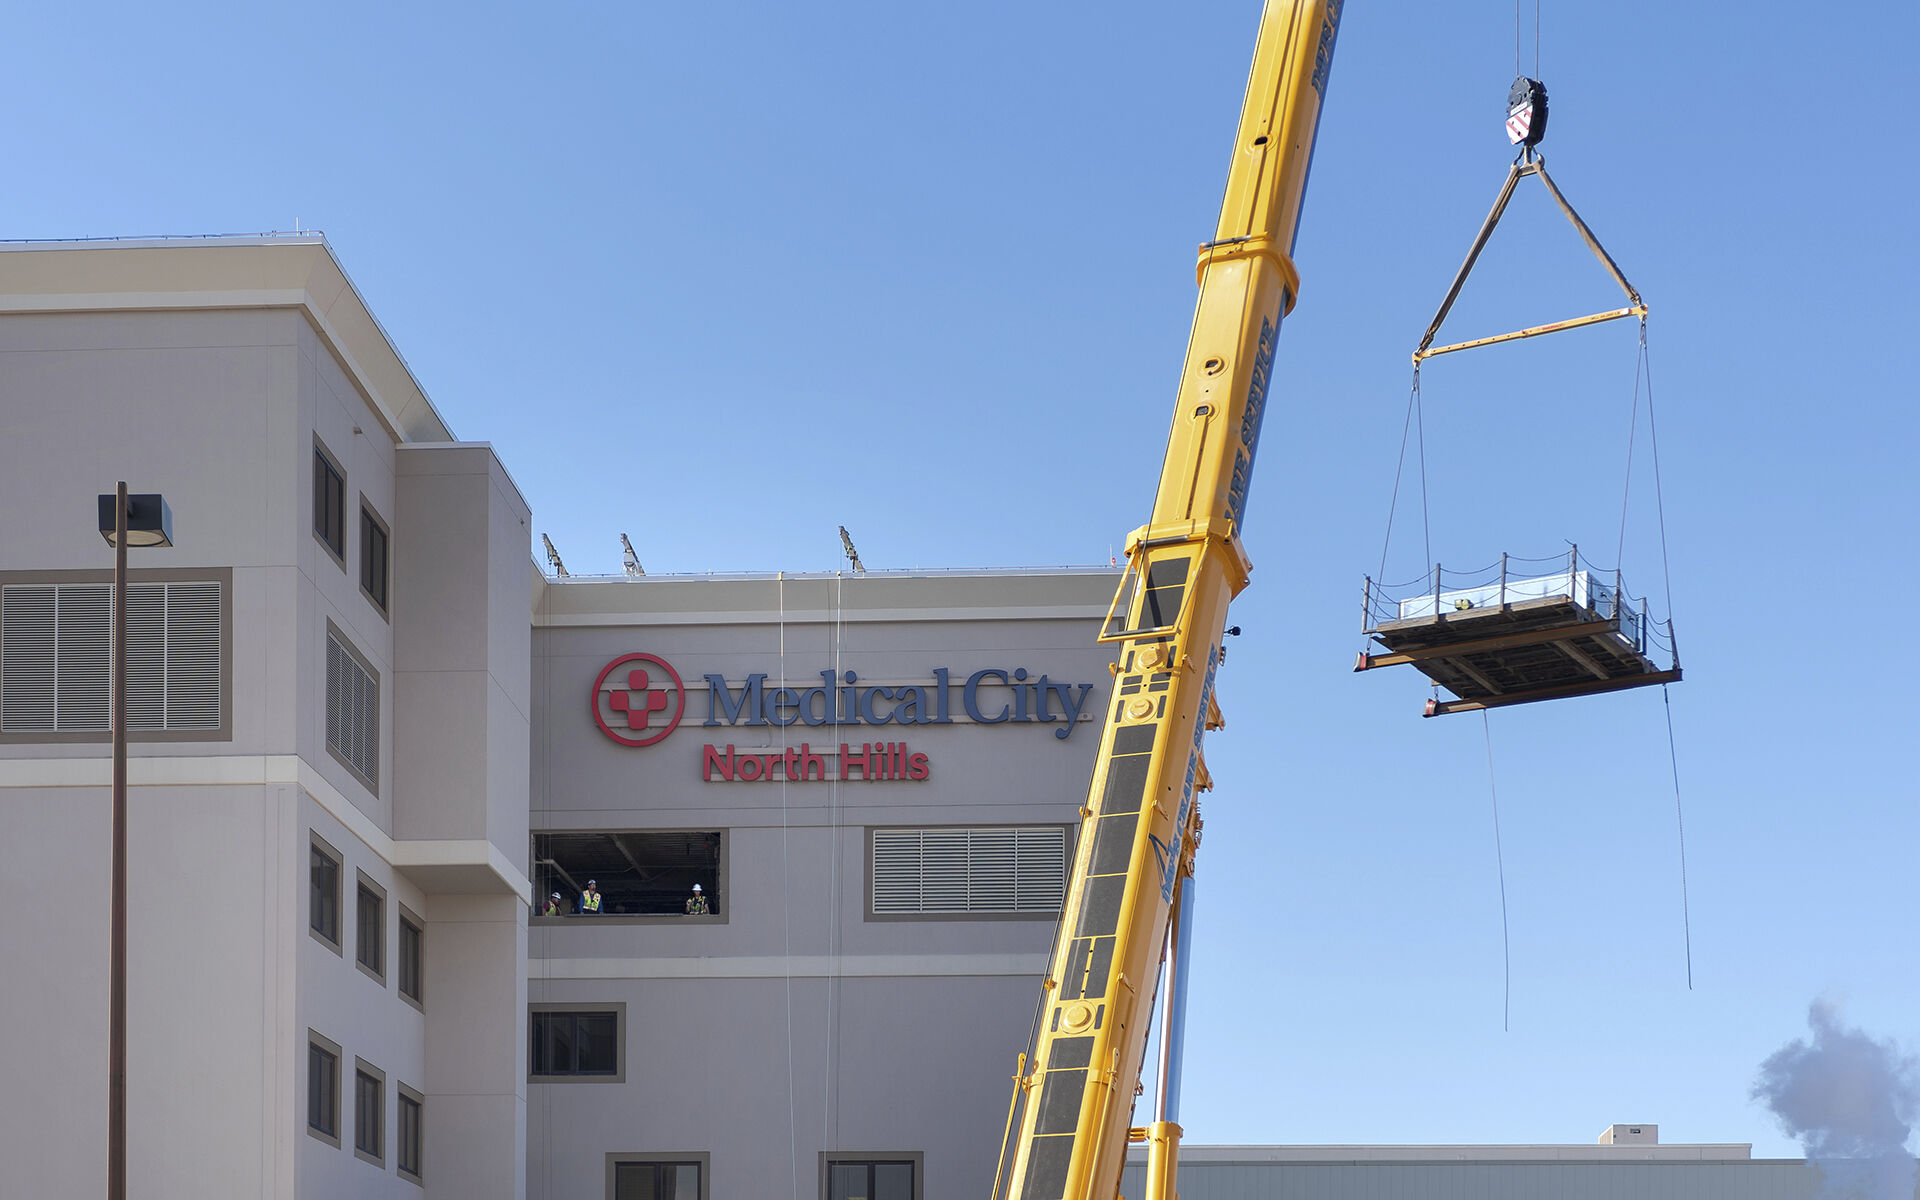 AHU Replacements - Medical City North Hills Hospital